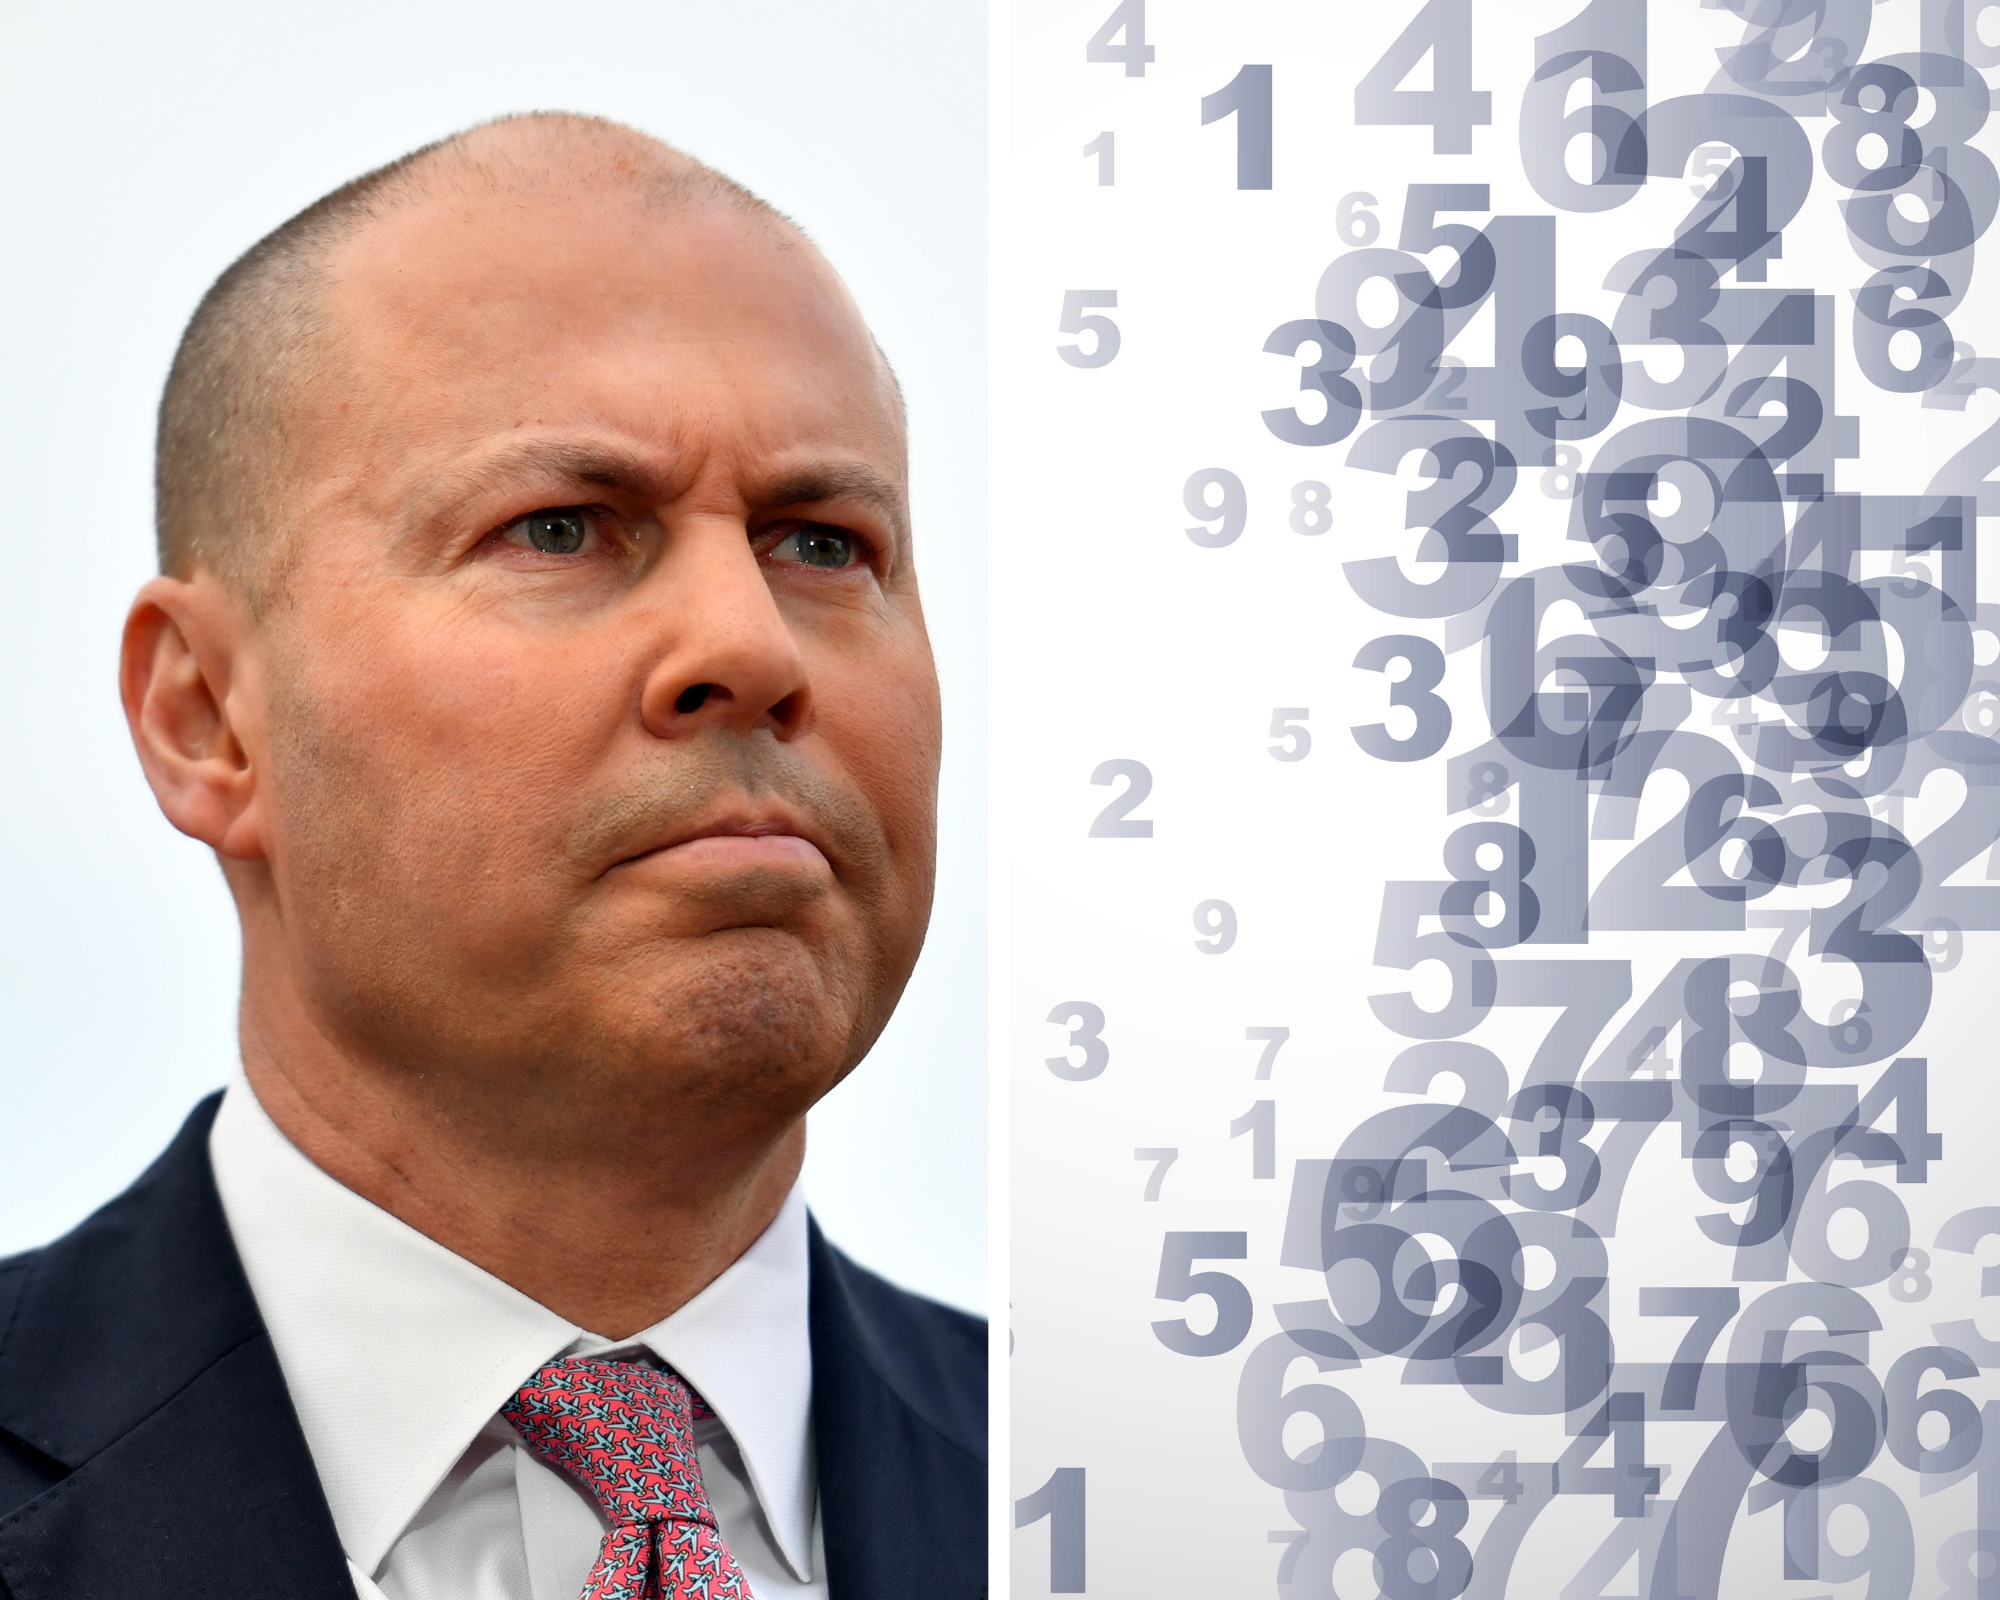 Budget 2021 explained in numbers